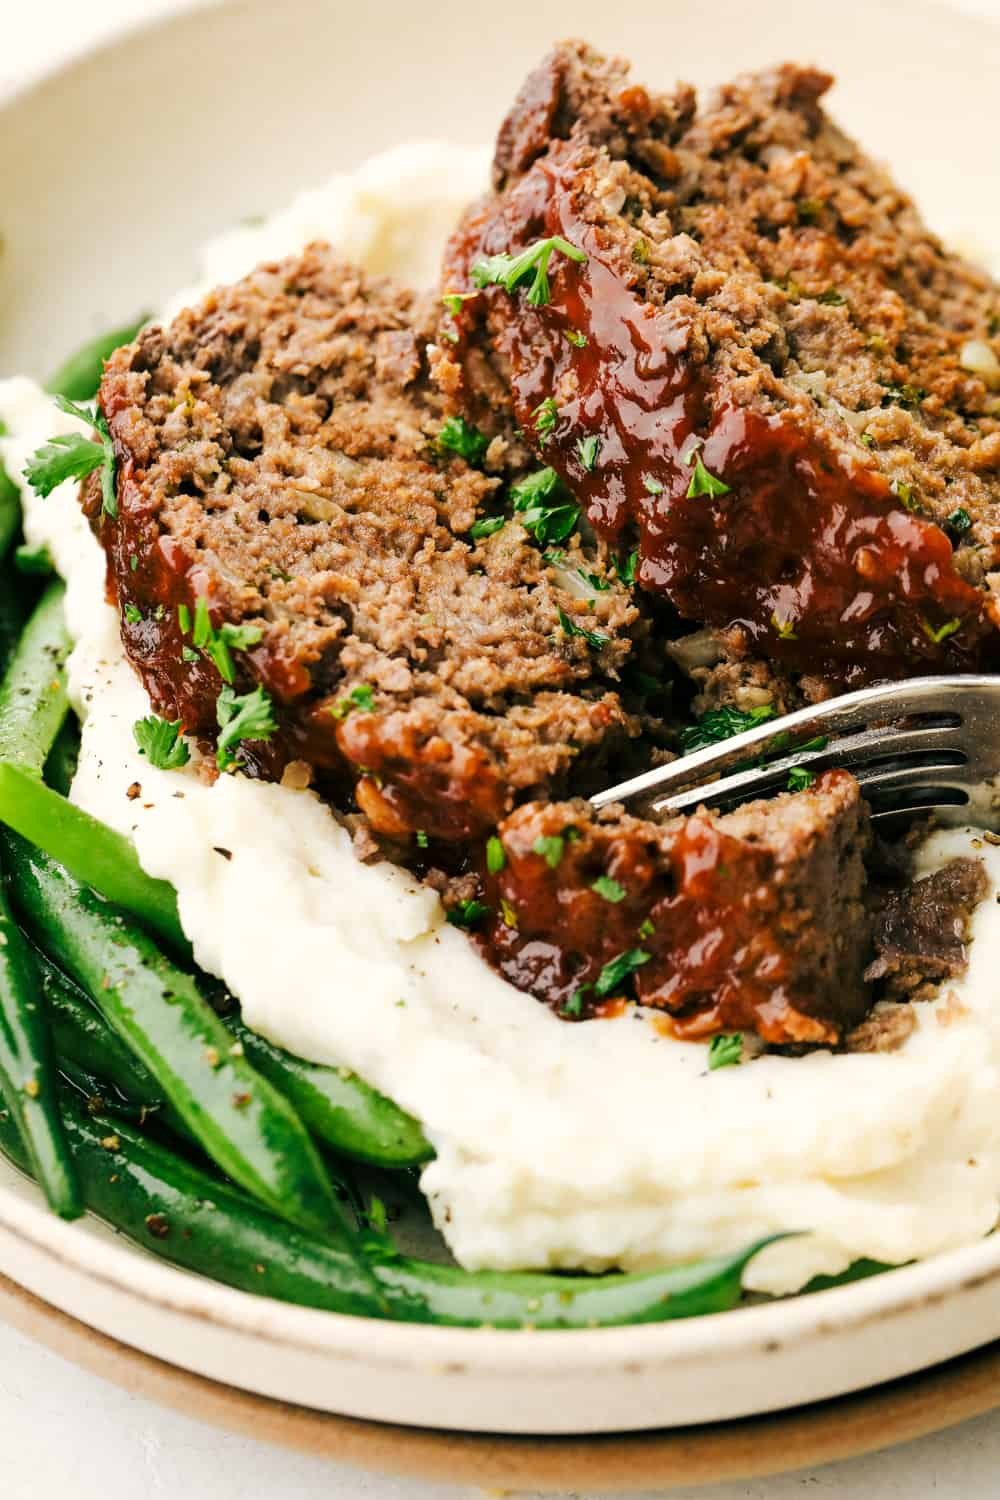 Tender and juicy meatloaf on a bed of mashed potatoes and green beans.